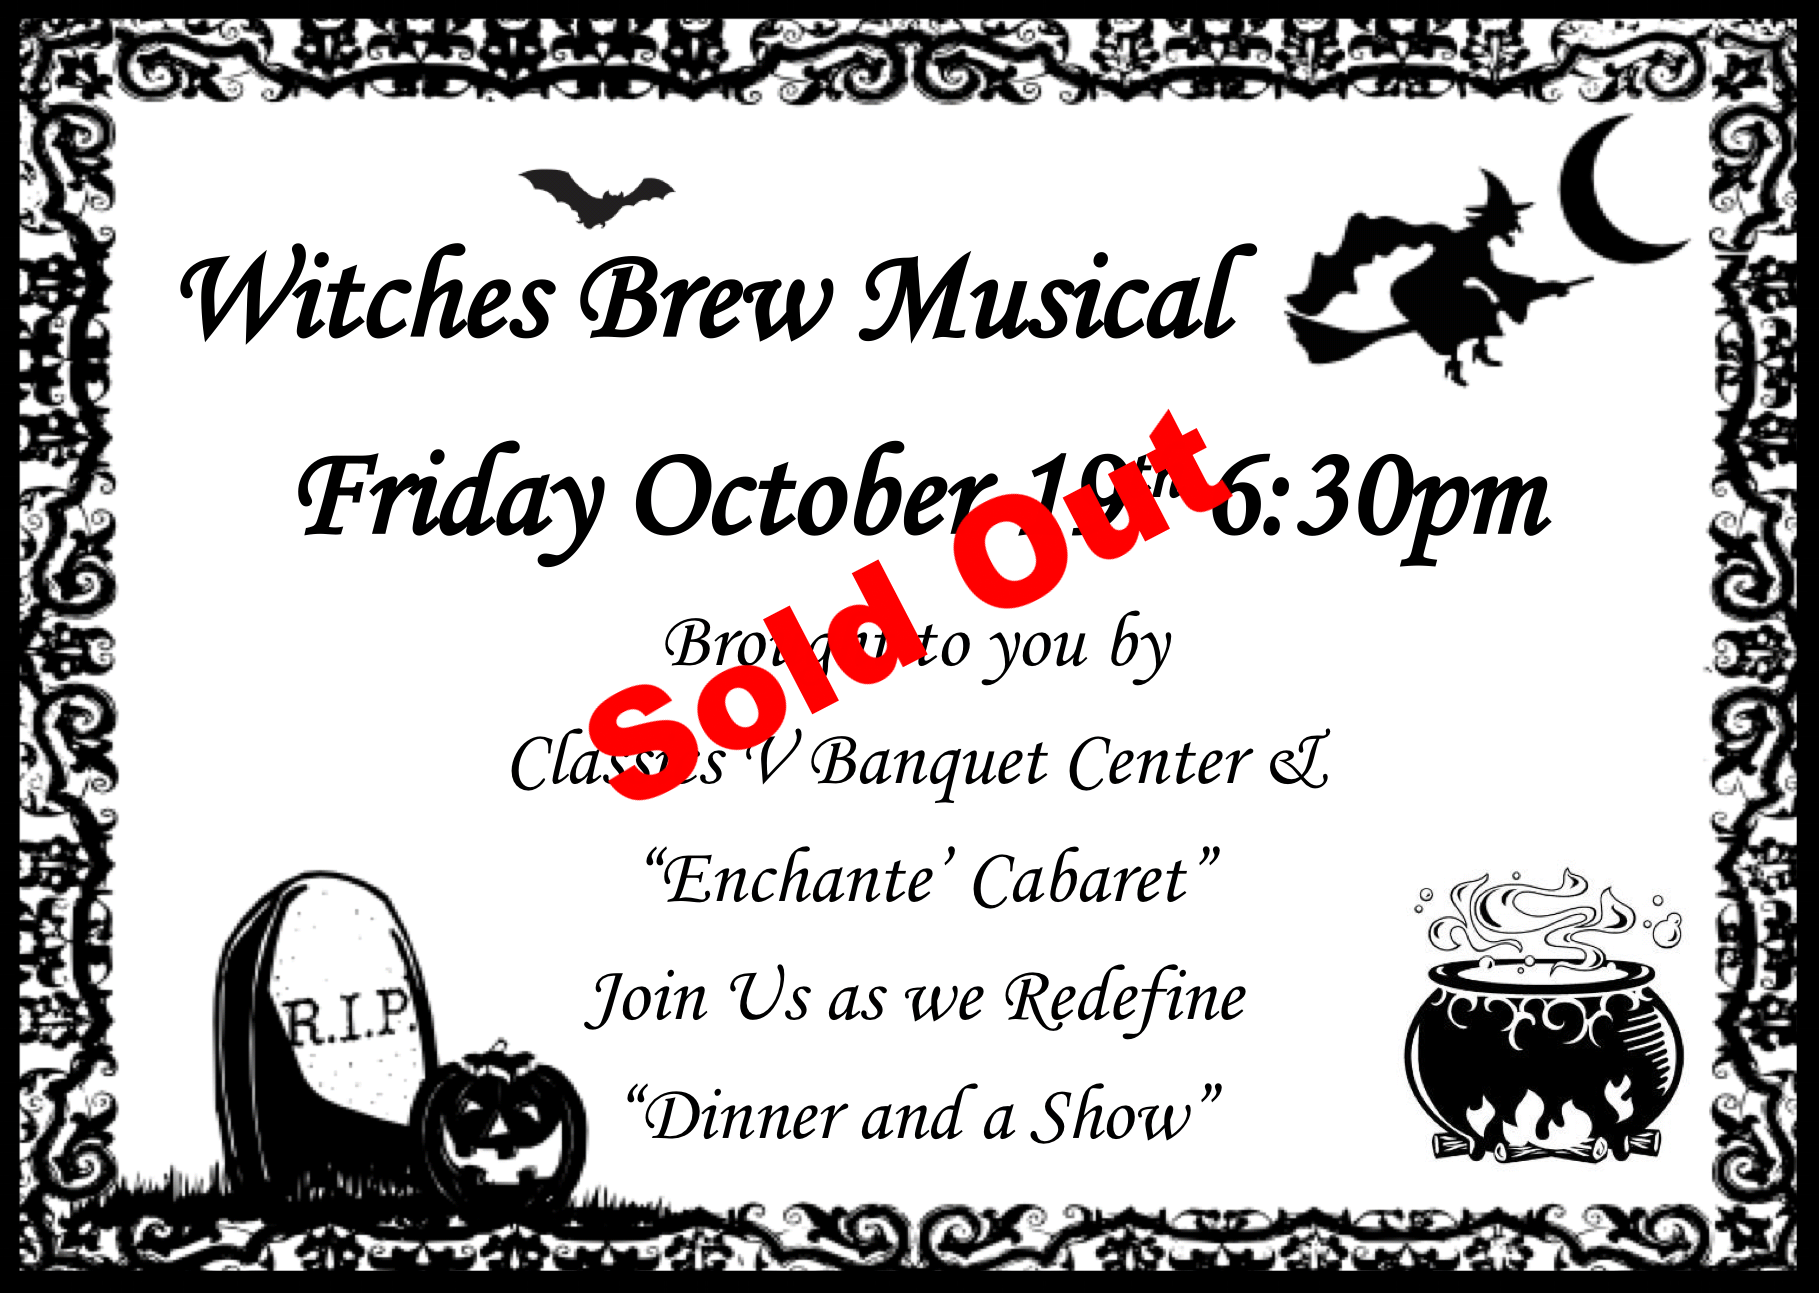 Witches Brew Banner Photo.jpeg